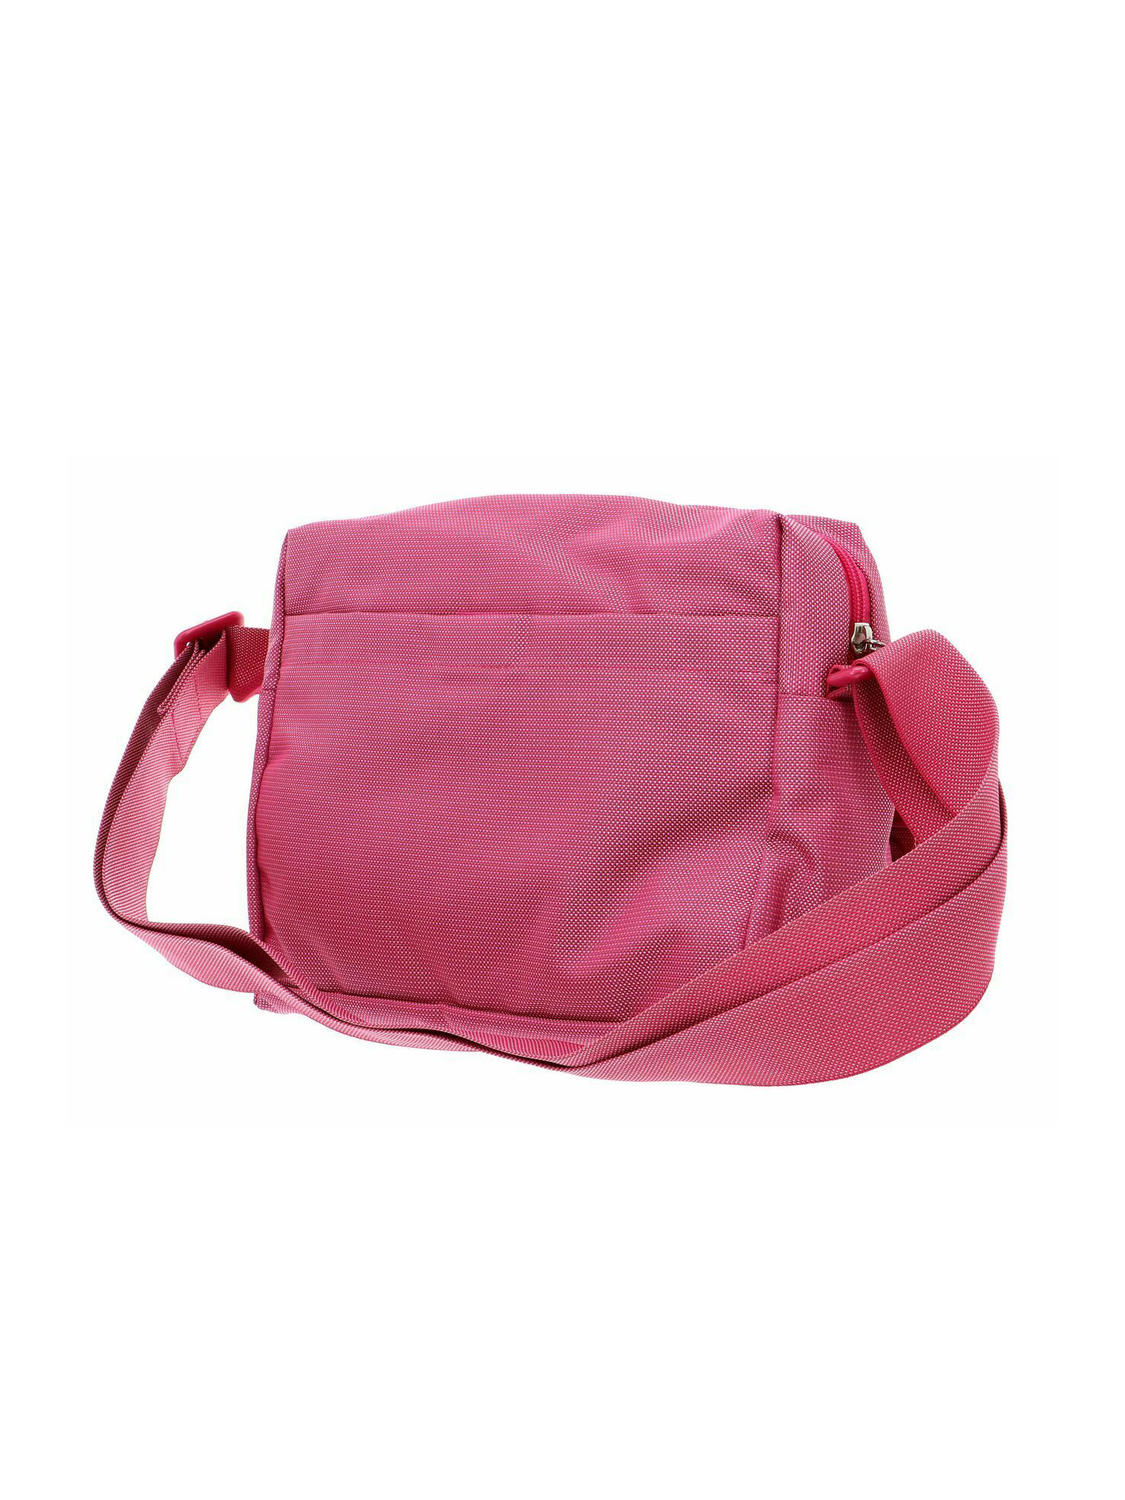 Borse Donna - MD20 MD20 Small bag a tracolla